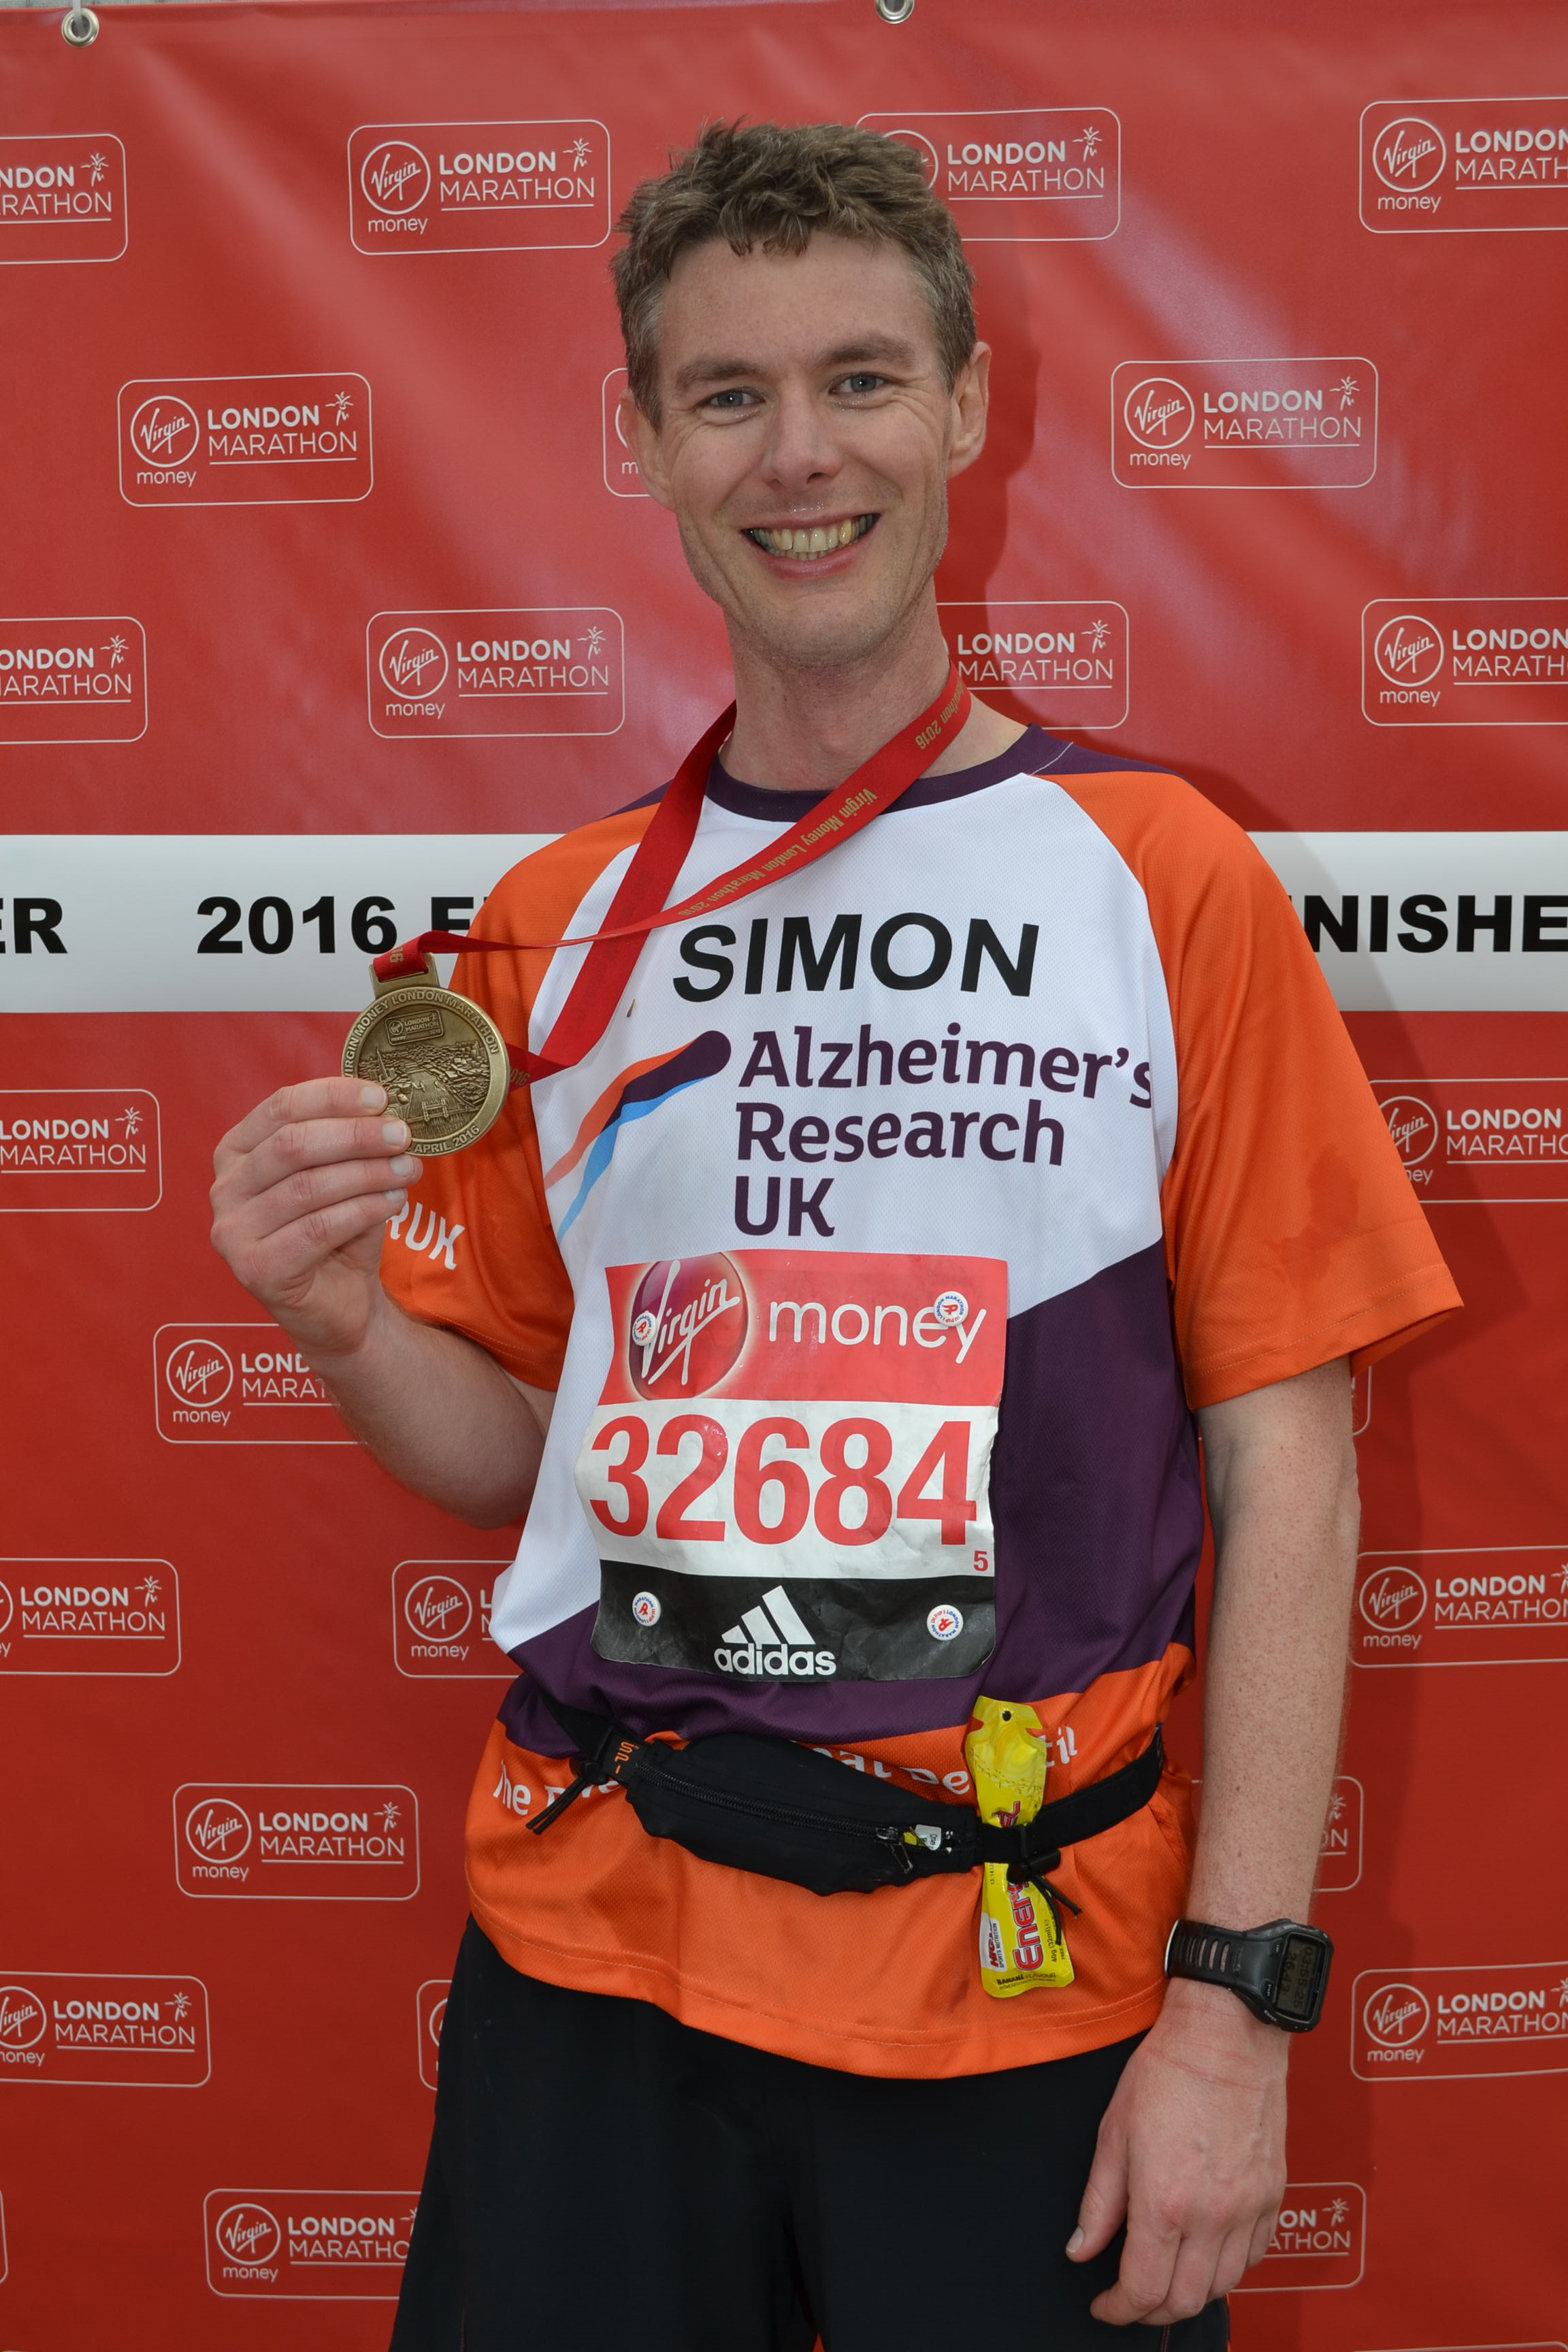 simon with marathon medal